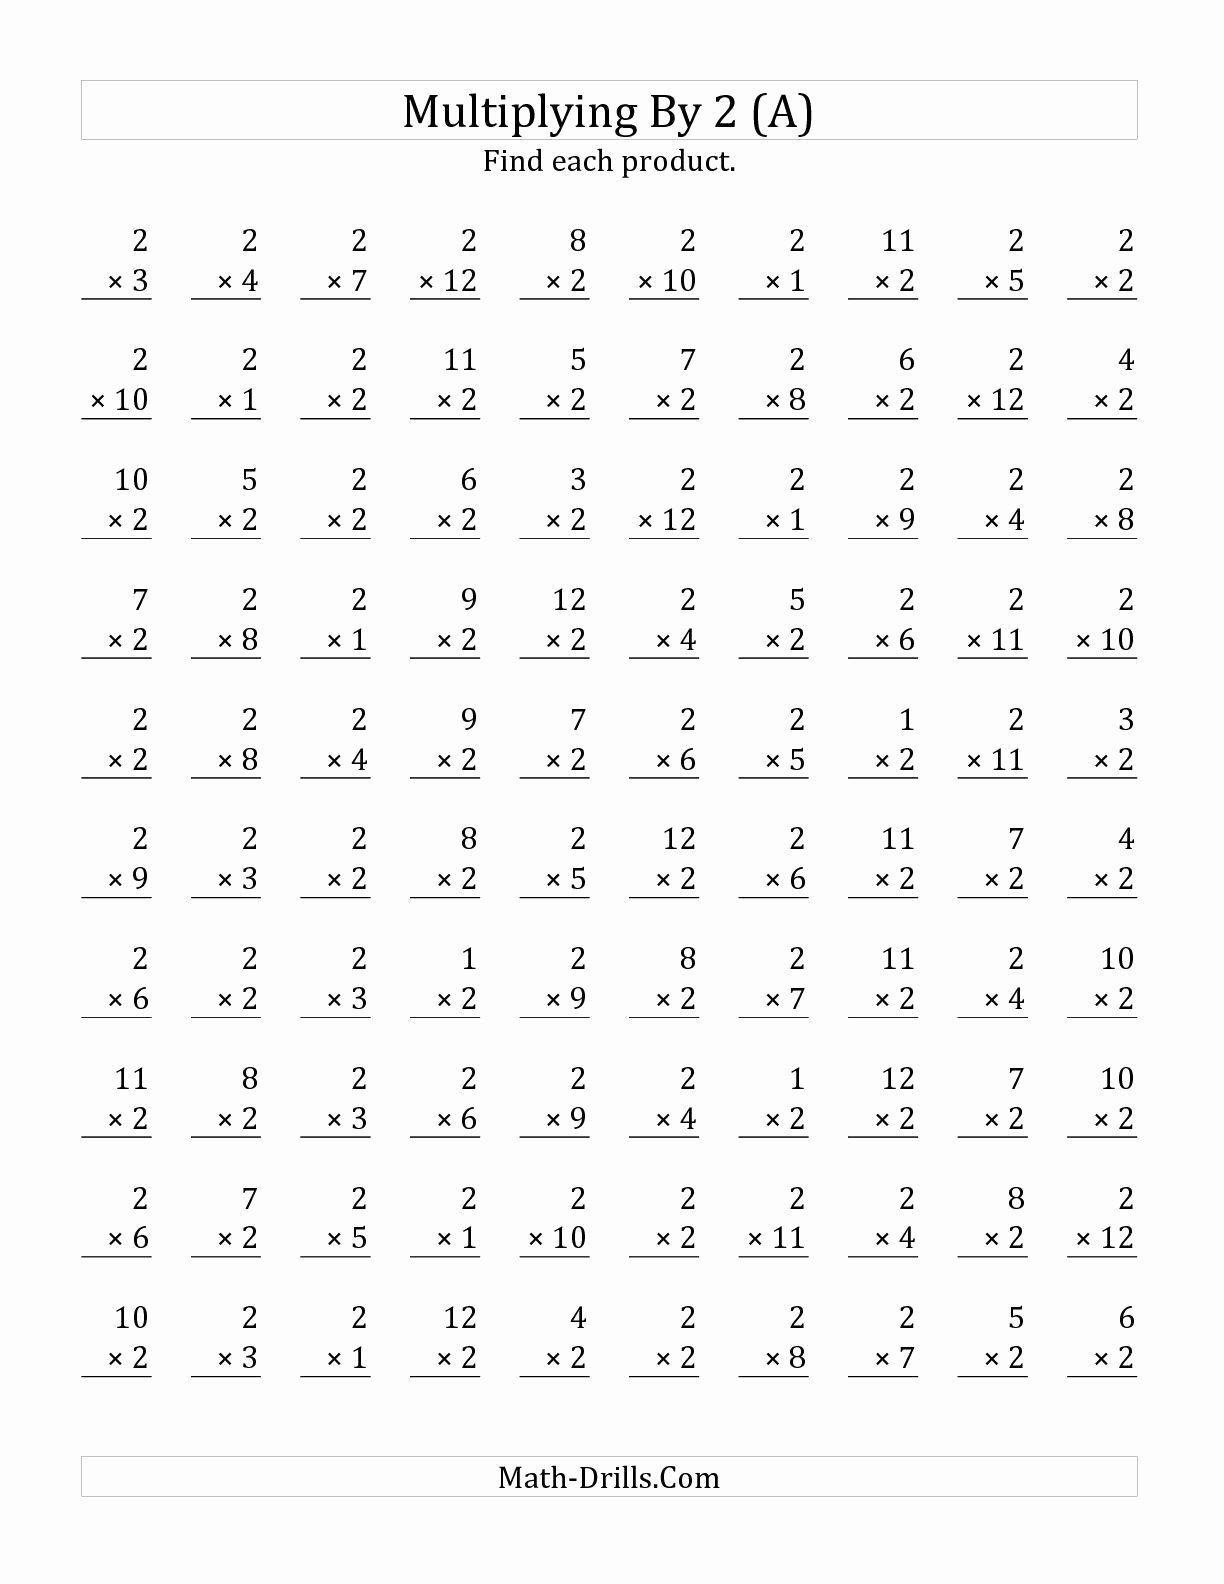 Multiplication Worksheets Up to 12 Lovely the Multiplying 1 to 12 by 2 A Math Worksheet From the